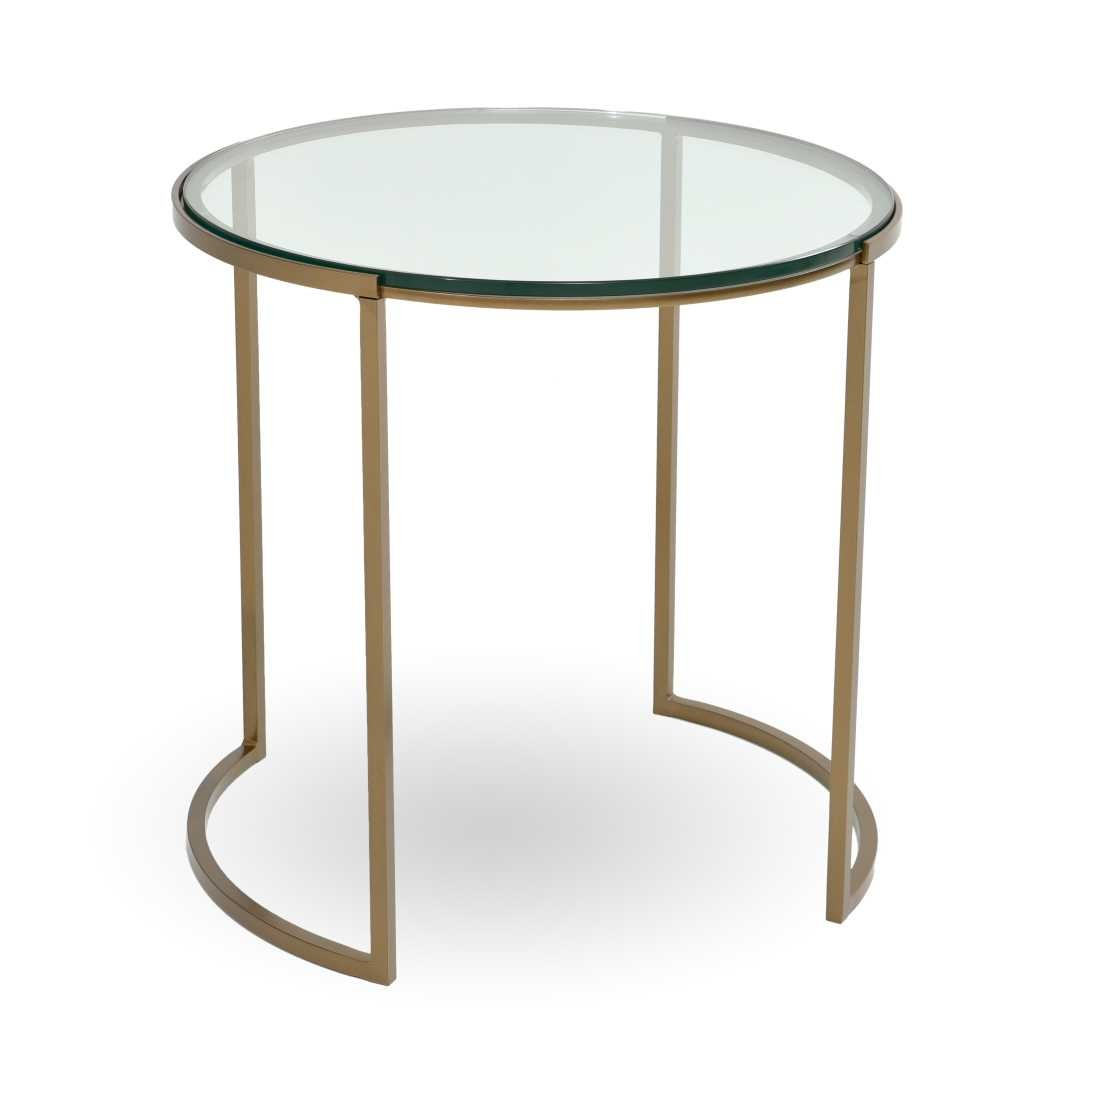 american furniture eden oval side table charleston forge tabor round end bronze accent glass modern writing desk inch square tablecloth white lamp solid wood with drawer drum